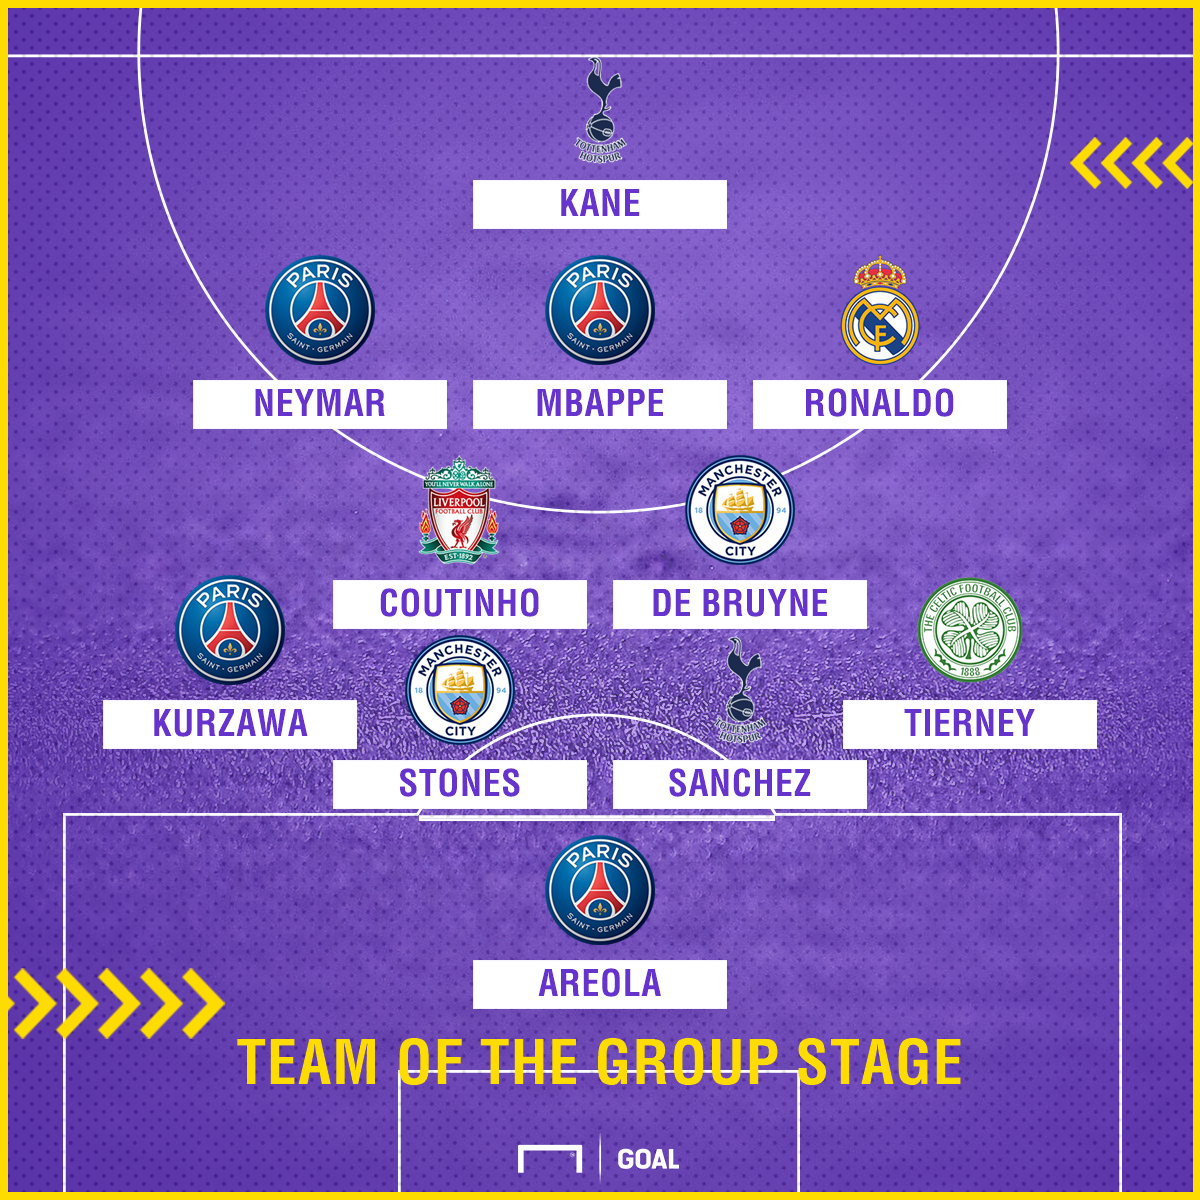 Team of the Group Stage